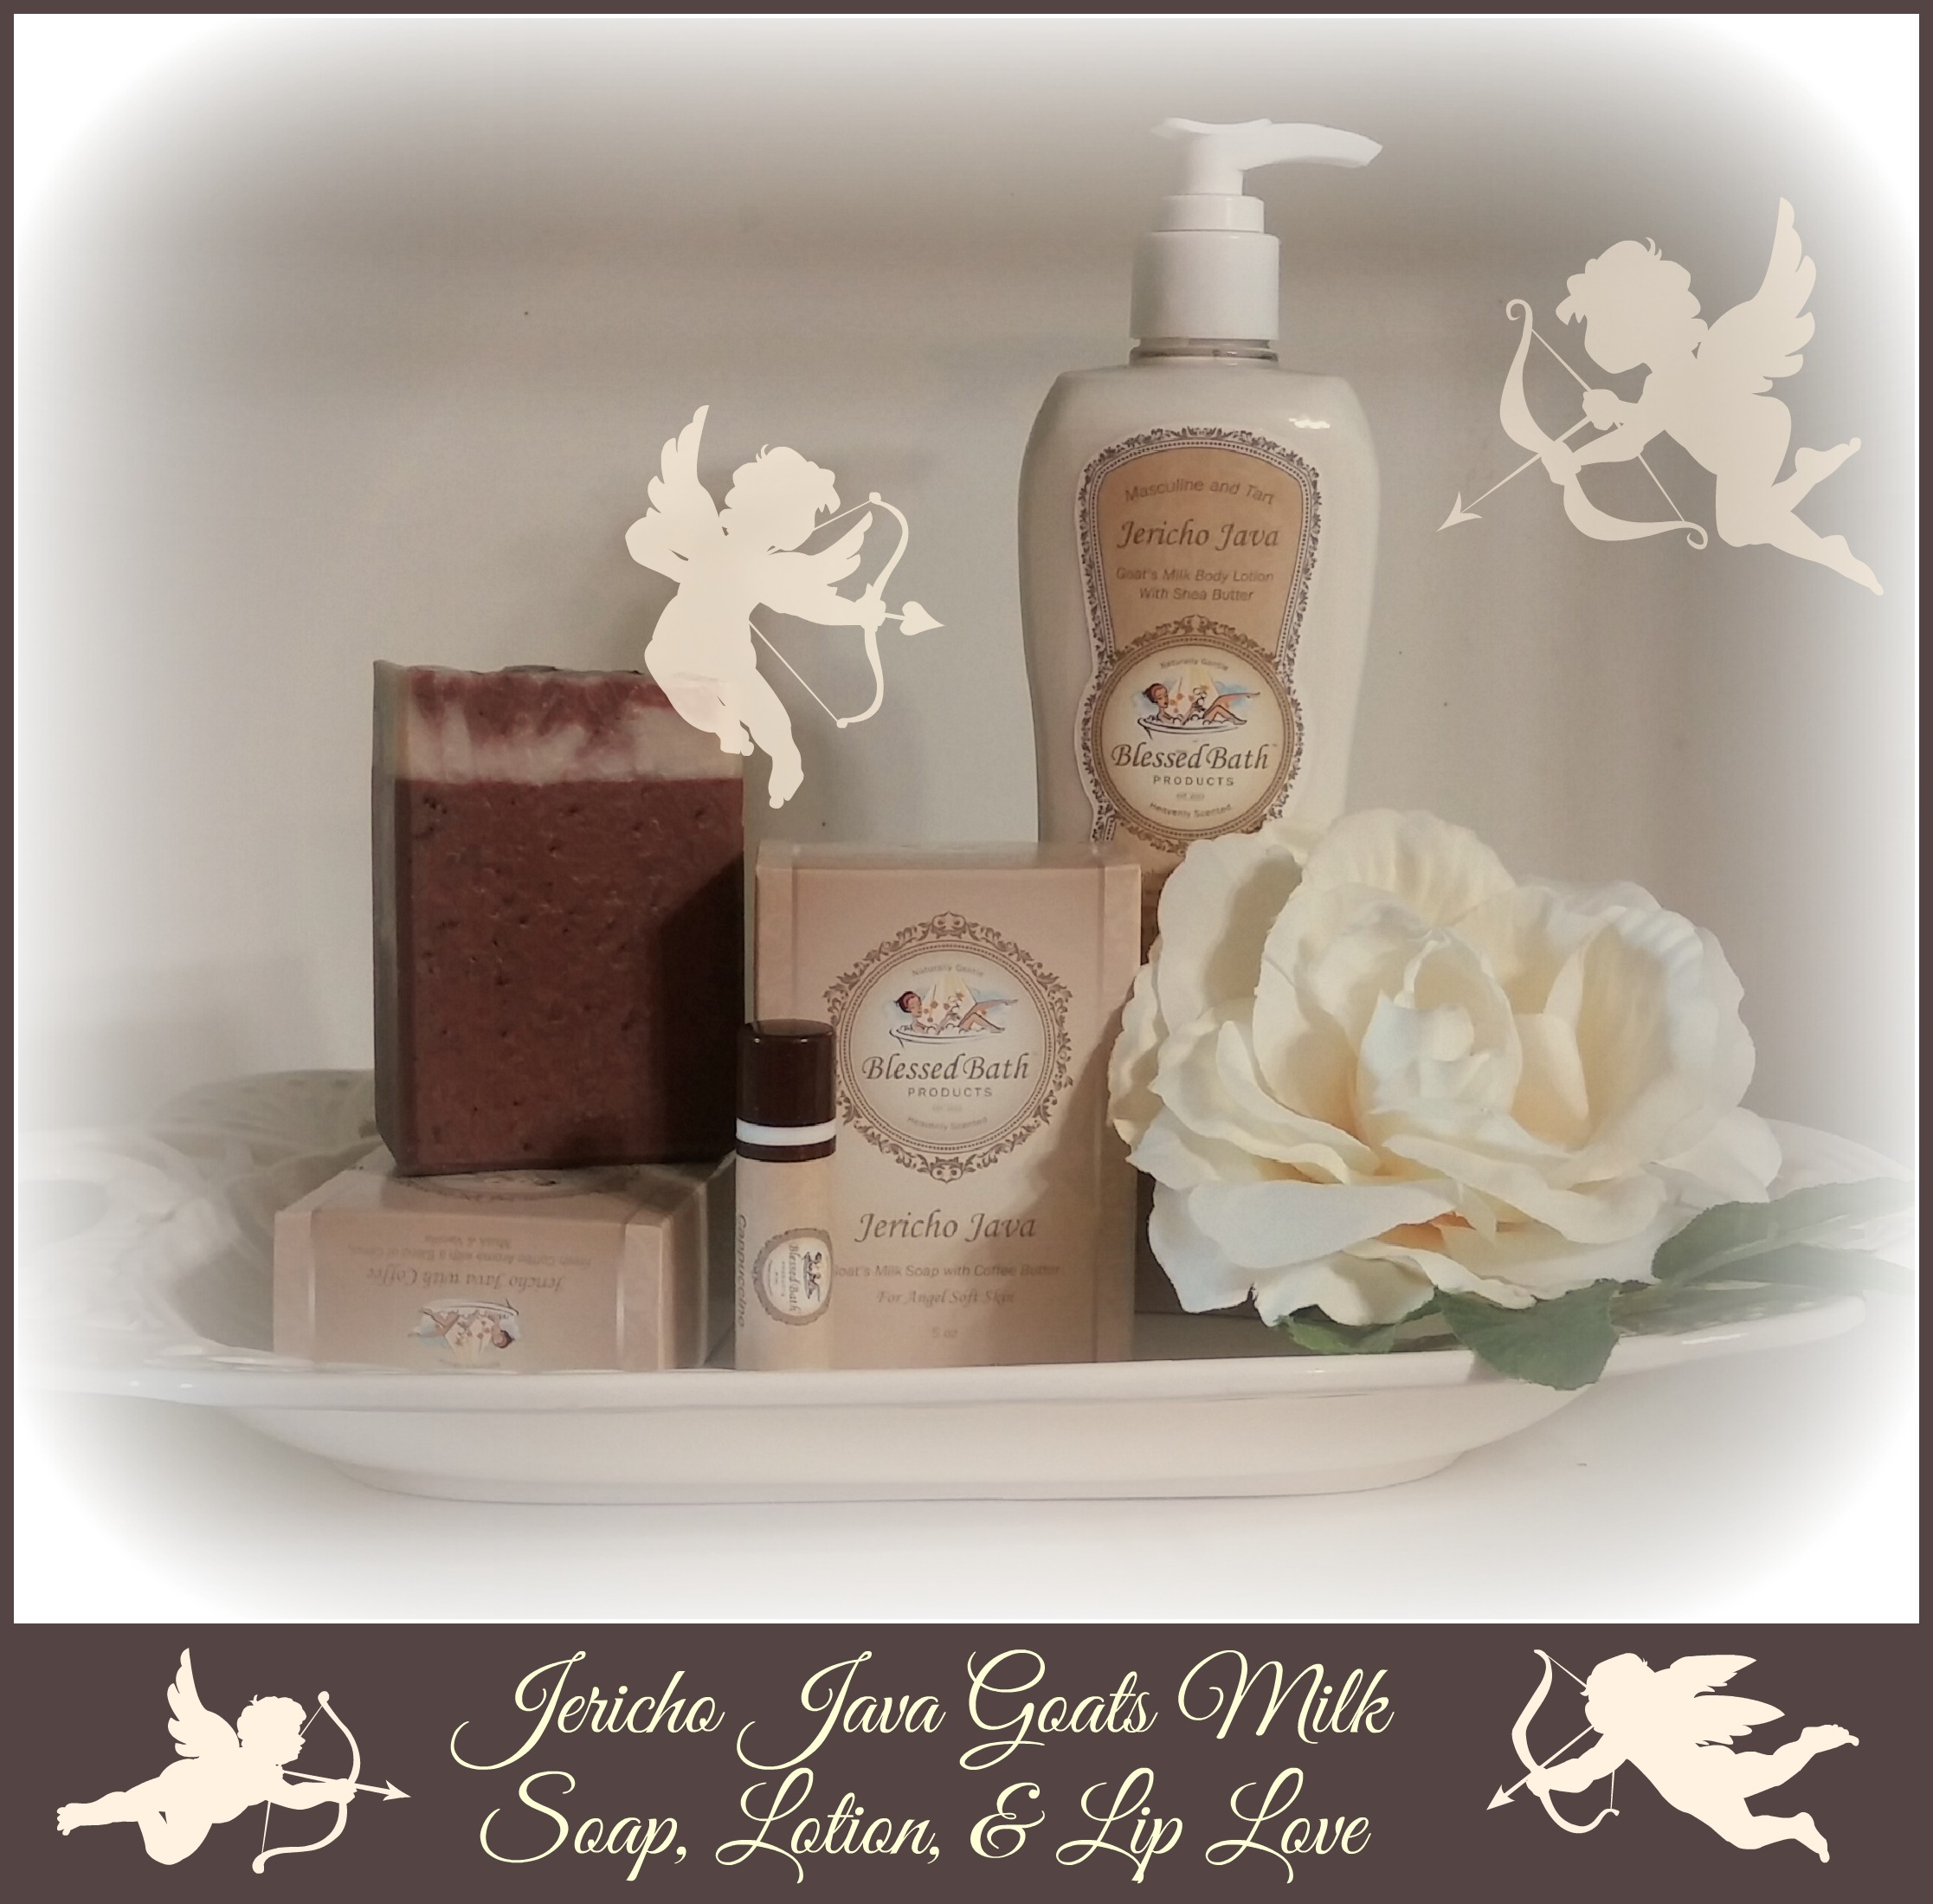 Jericho Java Goats Milk Soap